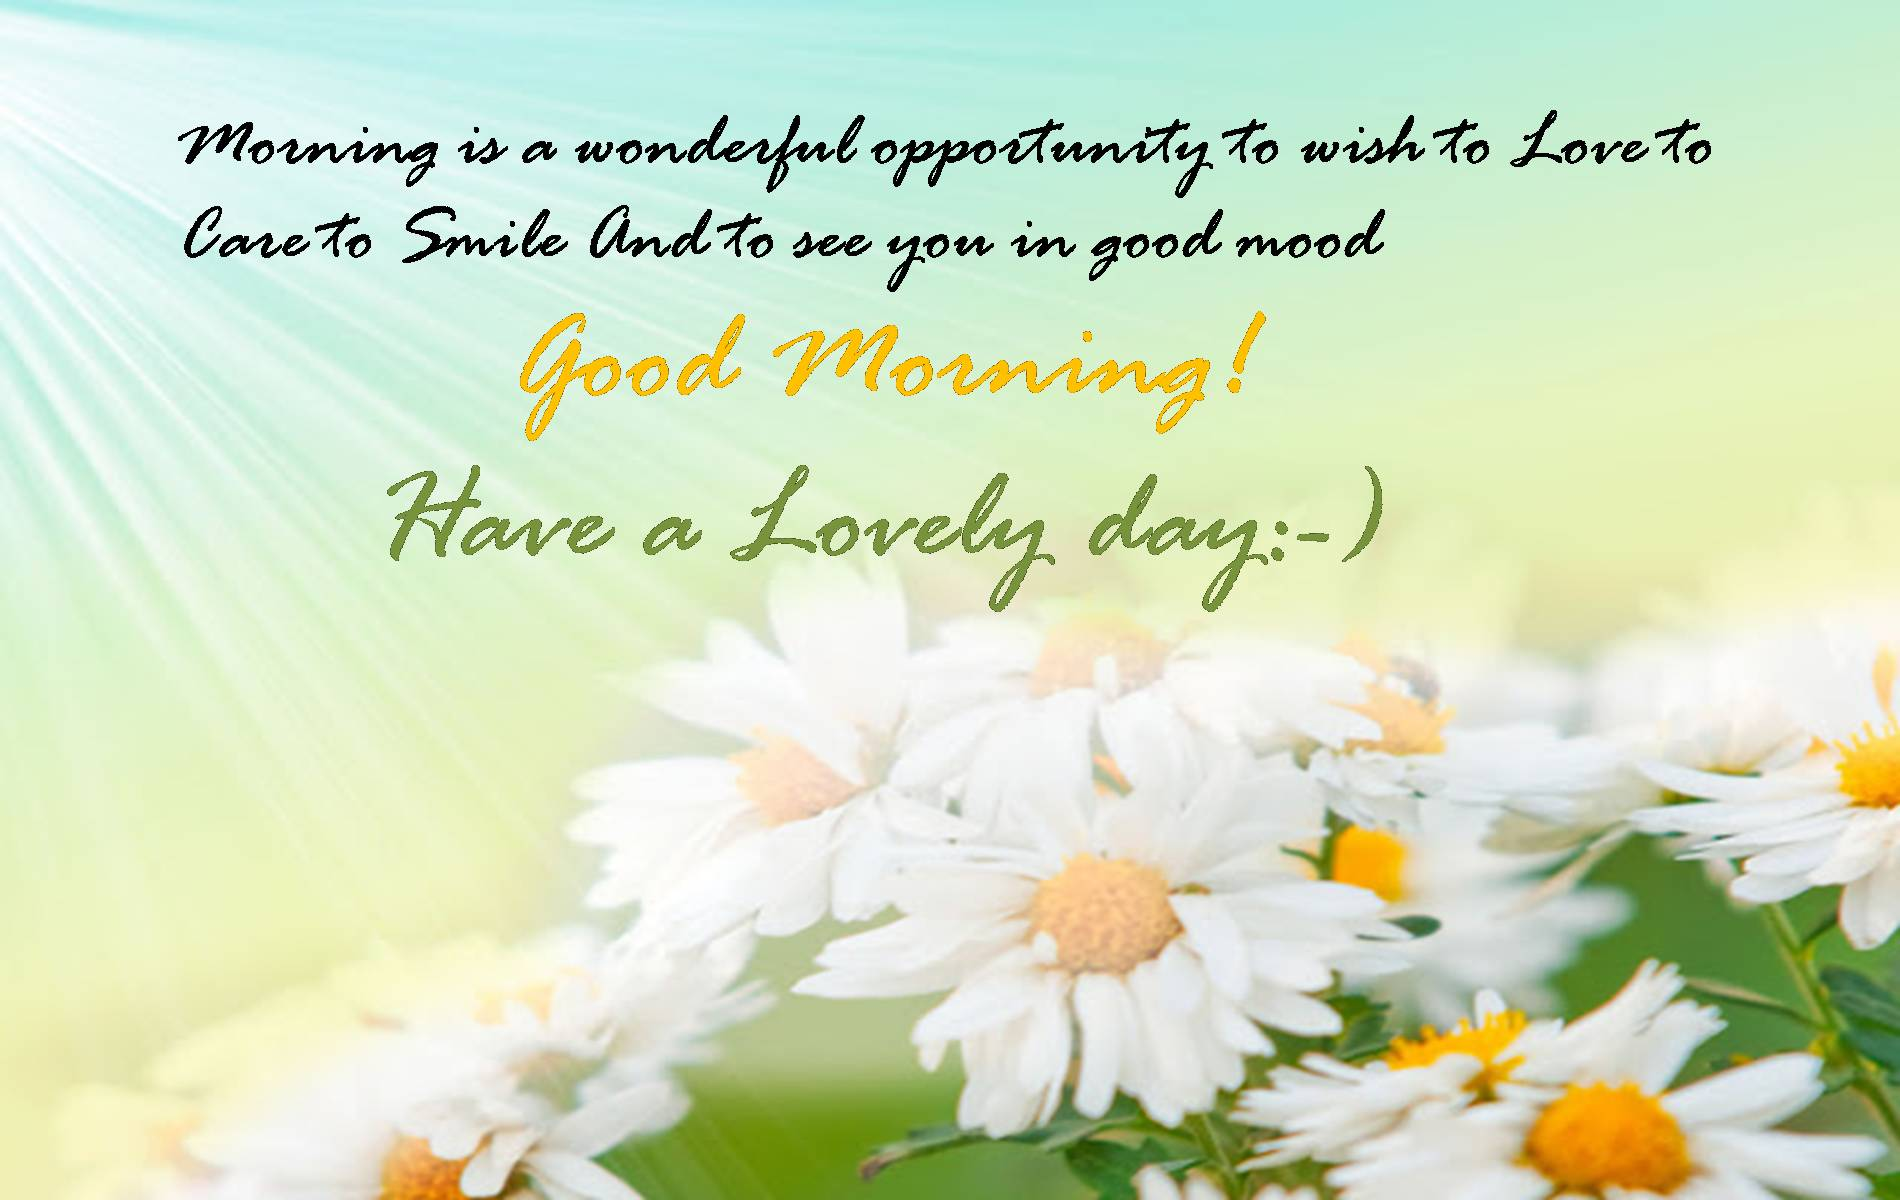 Hd wallpaper of good morning - Hug Day Sms Hd Wallpapers For Friends Home Concepts Ideas